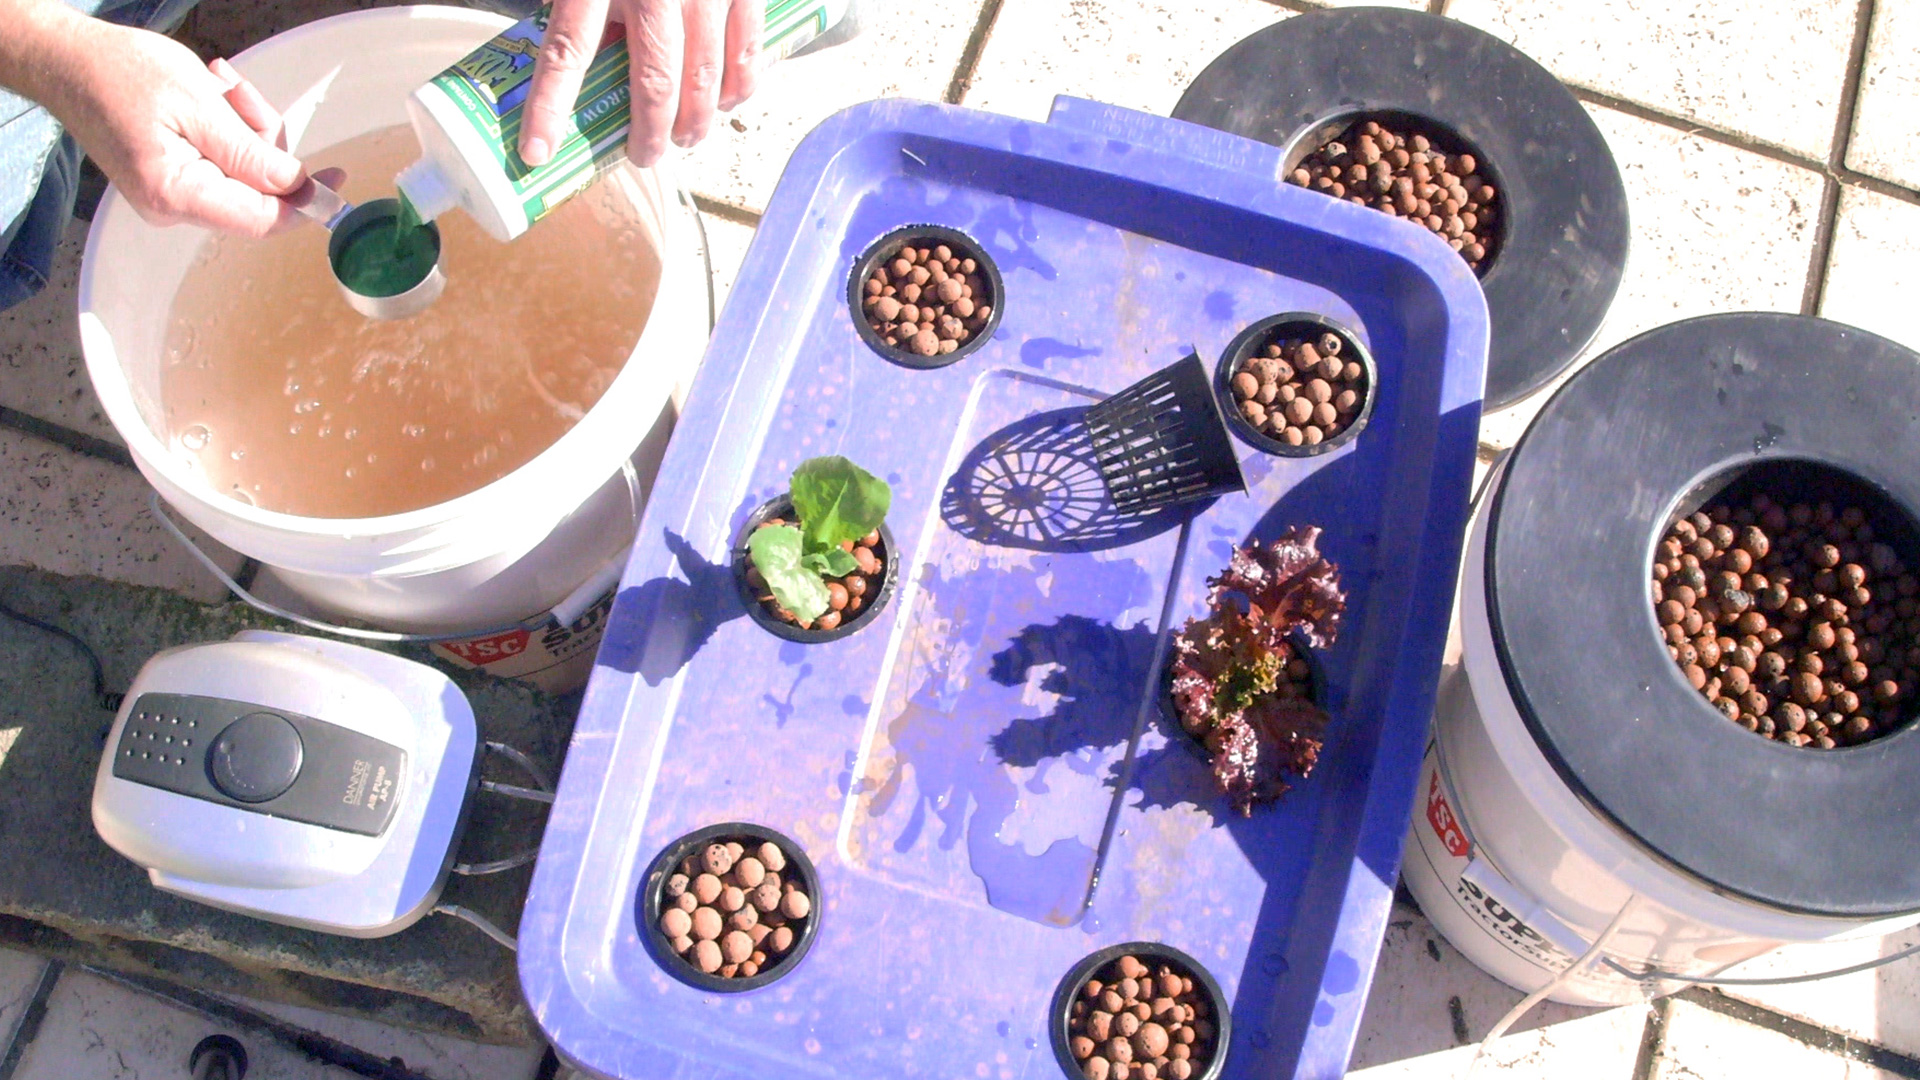 how-to-make-deep-water-hydroponics-system-cannabasics-105-thumbnail-1